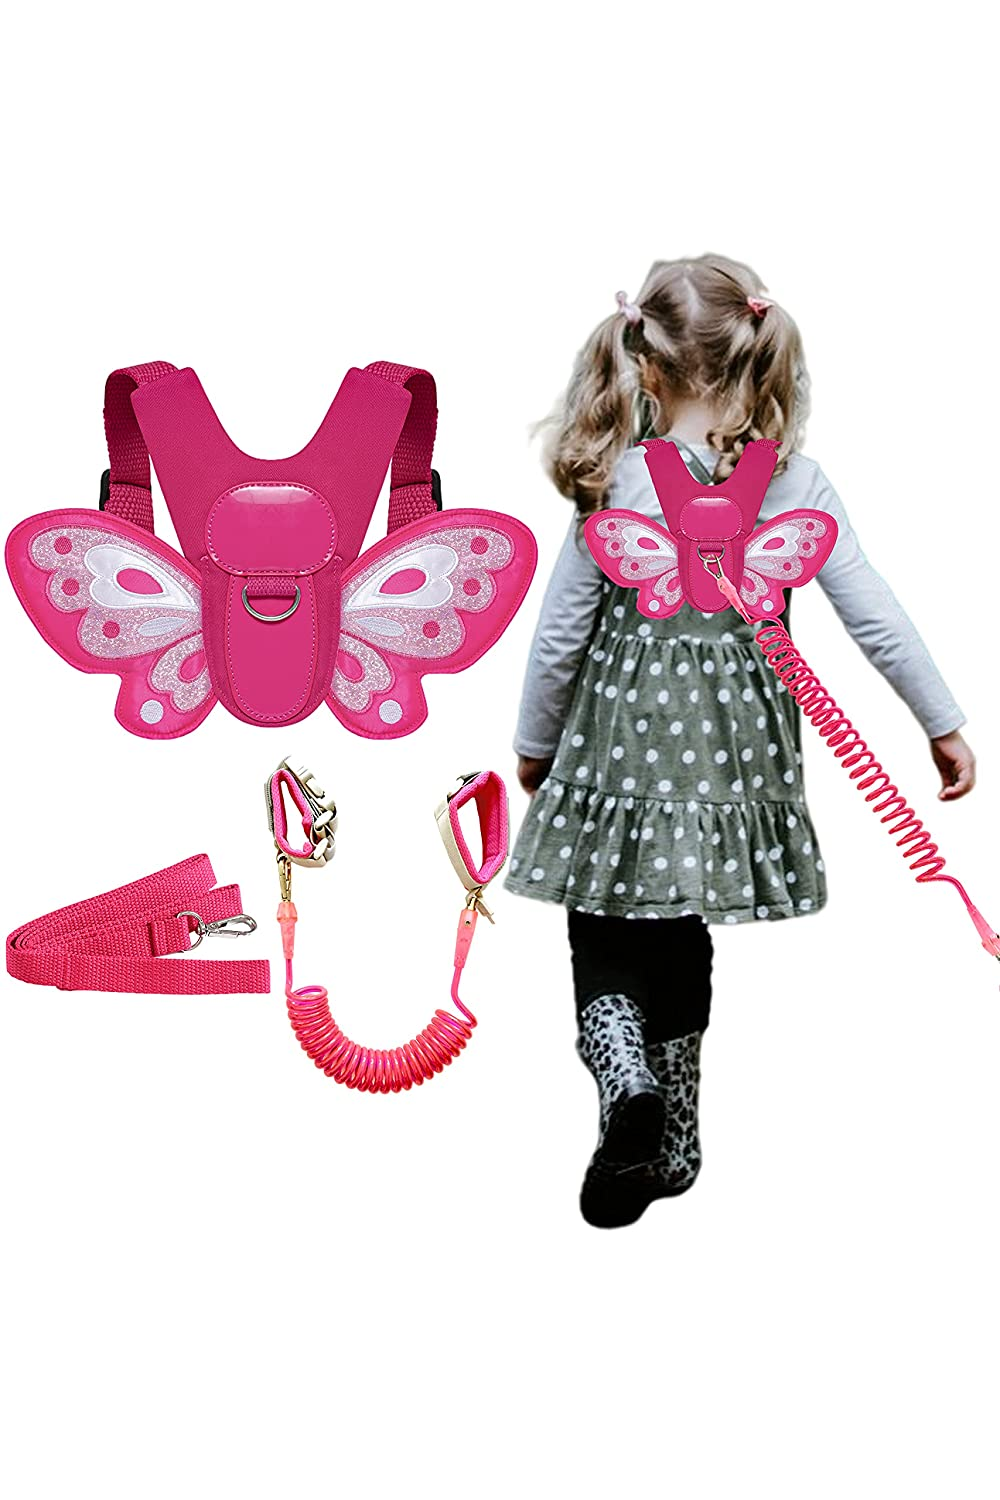 Butterfly Toddlers Harness Leash with Kids Anti Lost Wristband for Children (Rose)